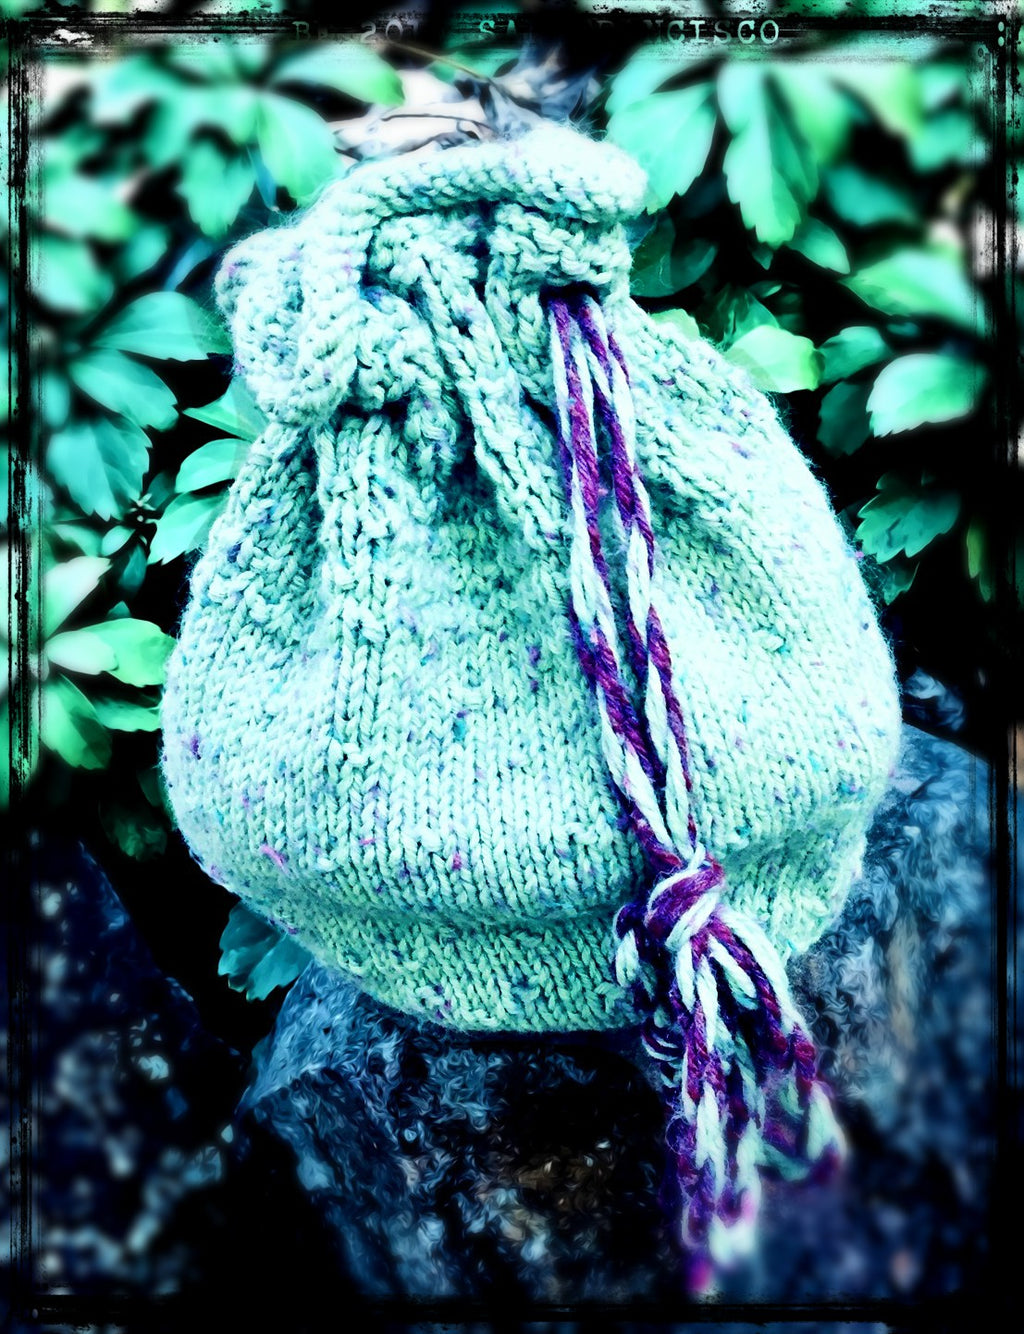 Spring Treasure Drawstring Bag  - Designed by Kate Lemmers